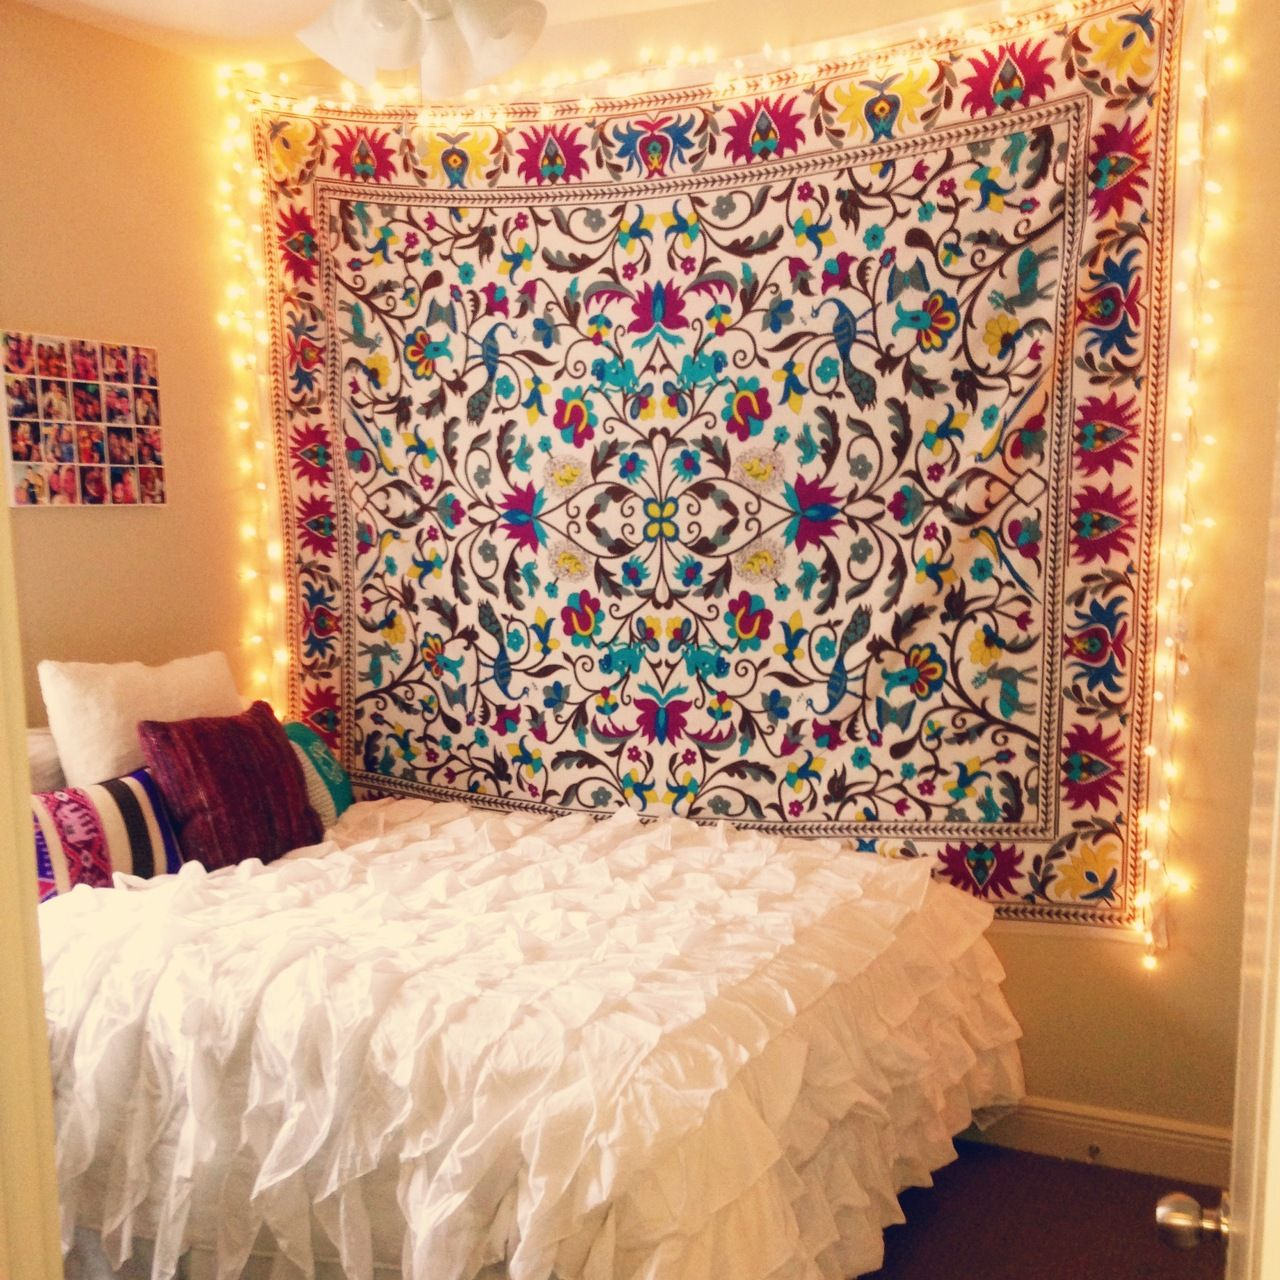 top 10 dorm room themes | alabama, apartments and teacher